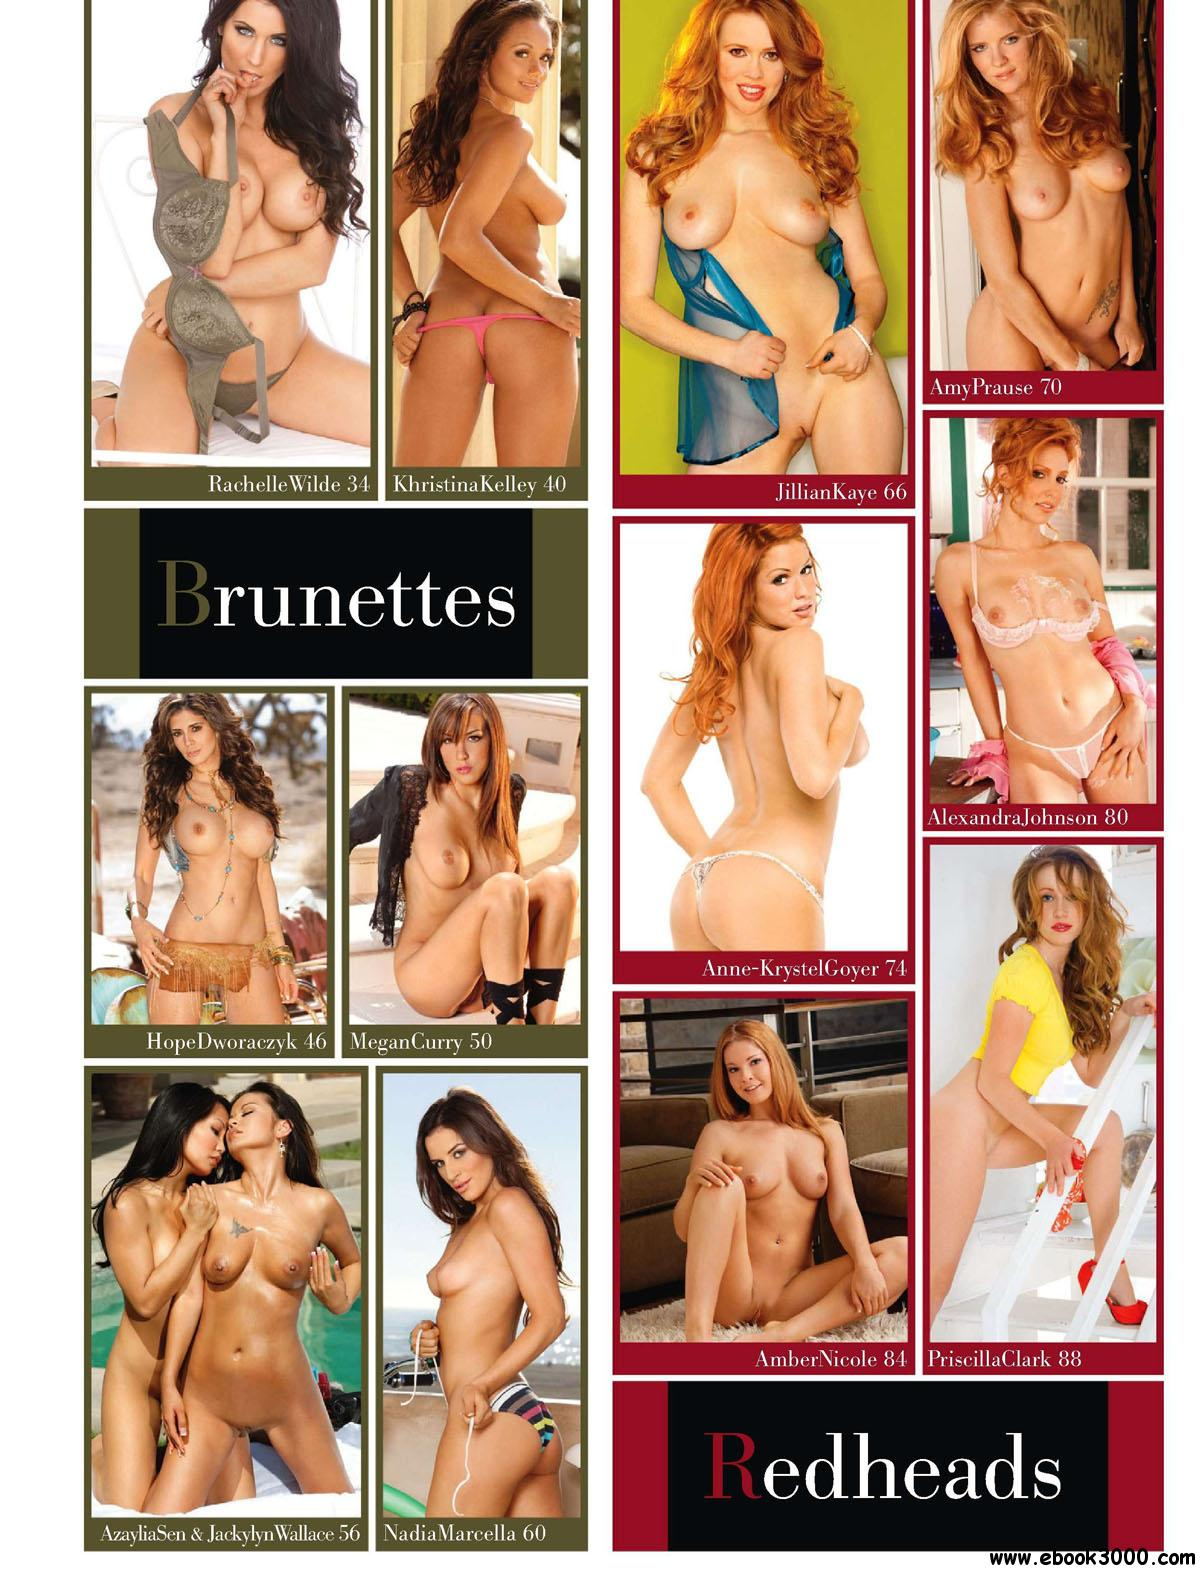 Playboy's Blondes, Brunettes, and Redheads - 2011 free download